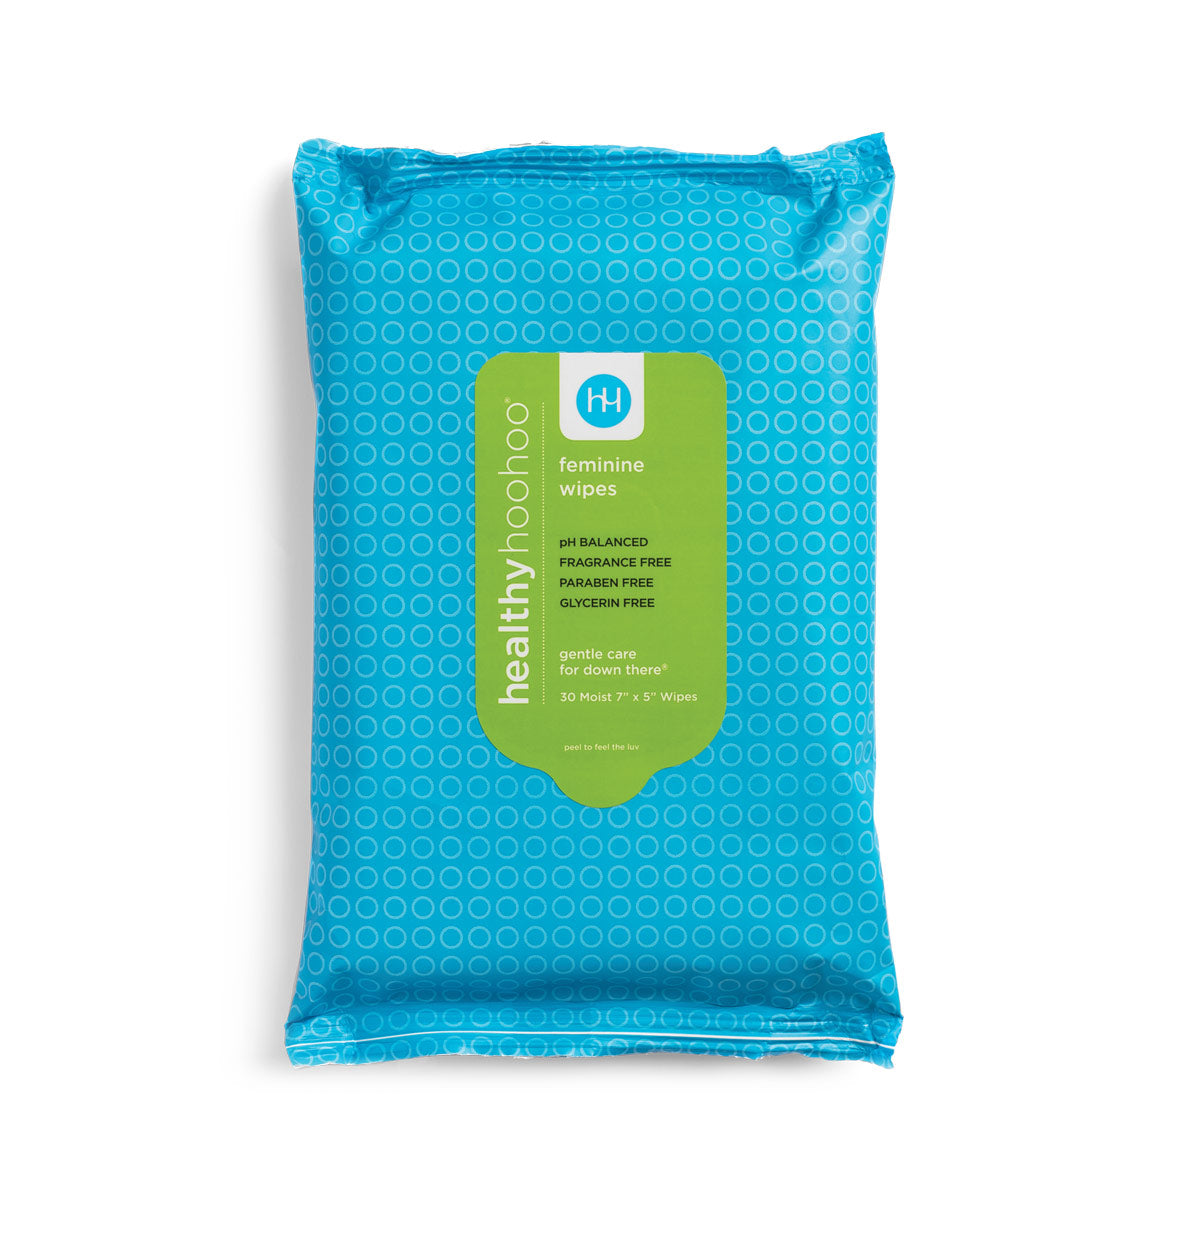 healthy hoohoo gentle feminine wipes